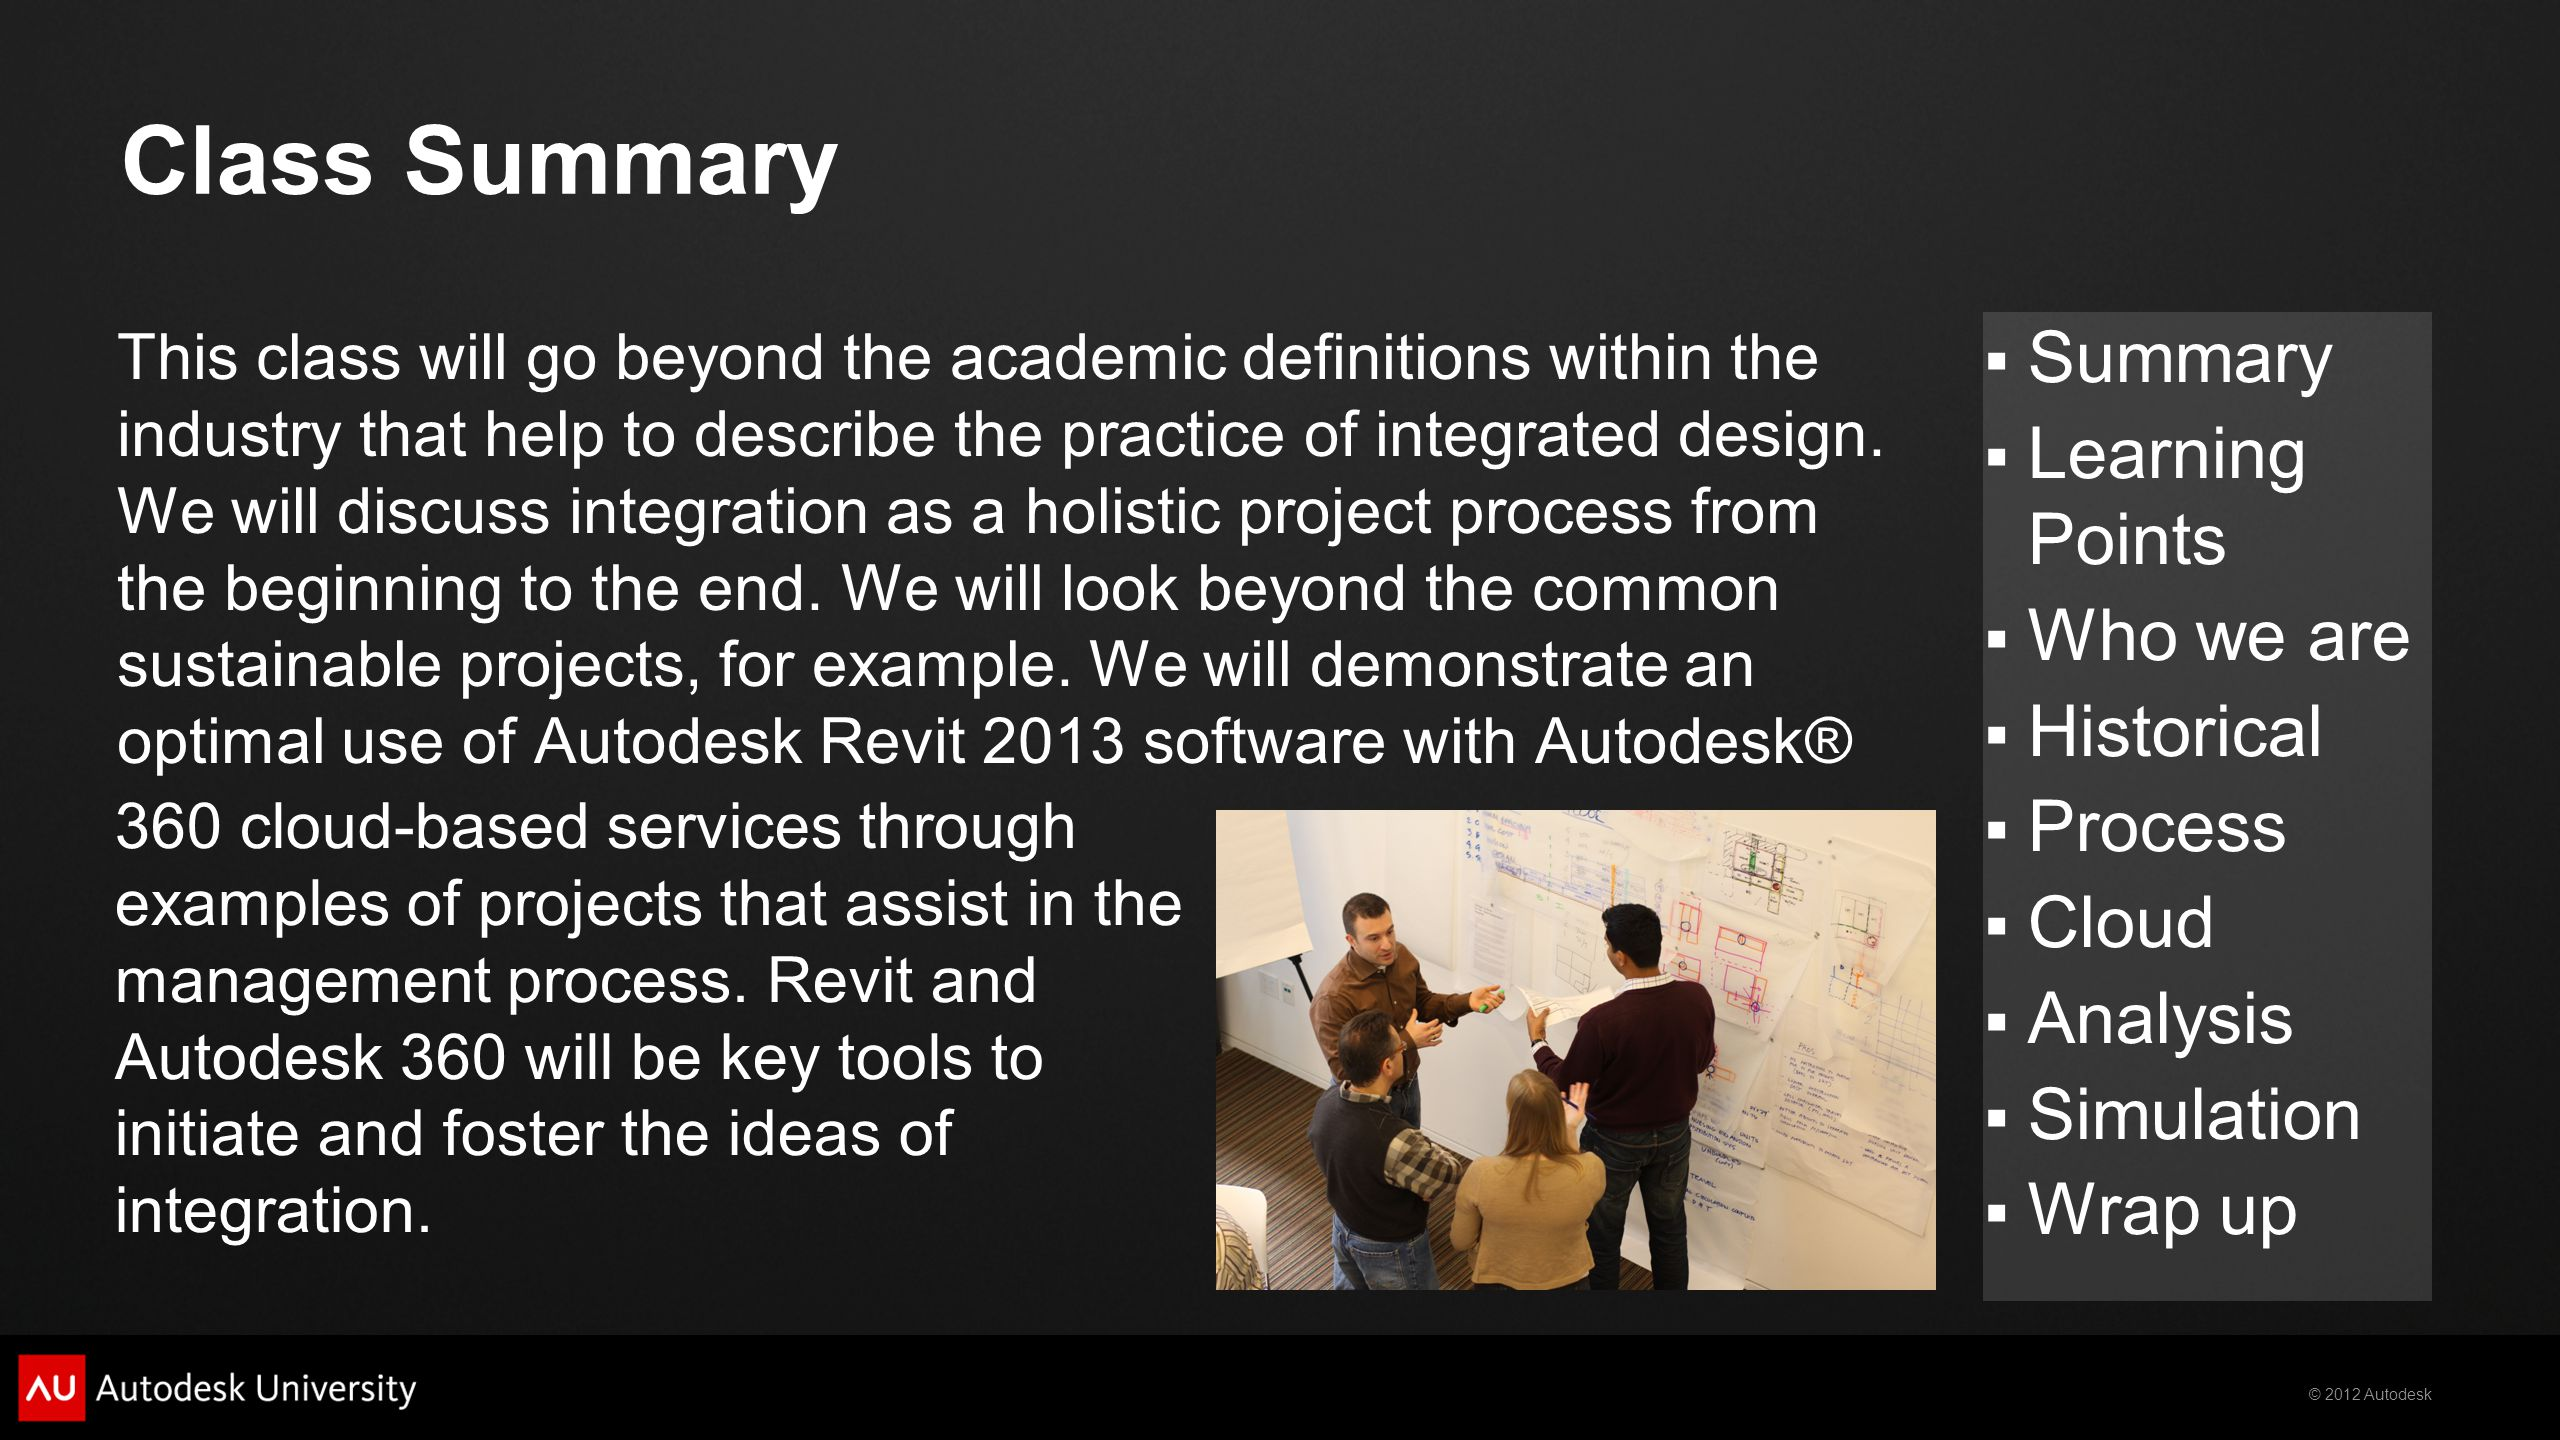 © 2012 Autodesk  Summary  Learning Points  Who we are  Historical  Process  Cloud  Analysis  Simulation  Wrap up Class Summary This class will go beyond the academic definitions within the industry that help to describe the practice of integrated design.